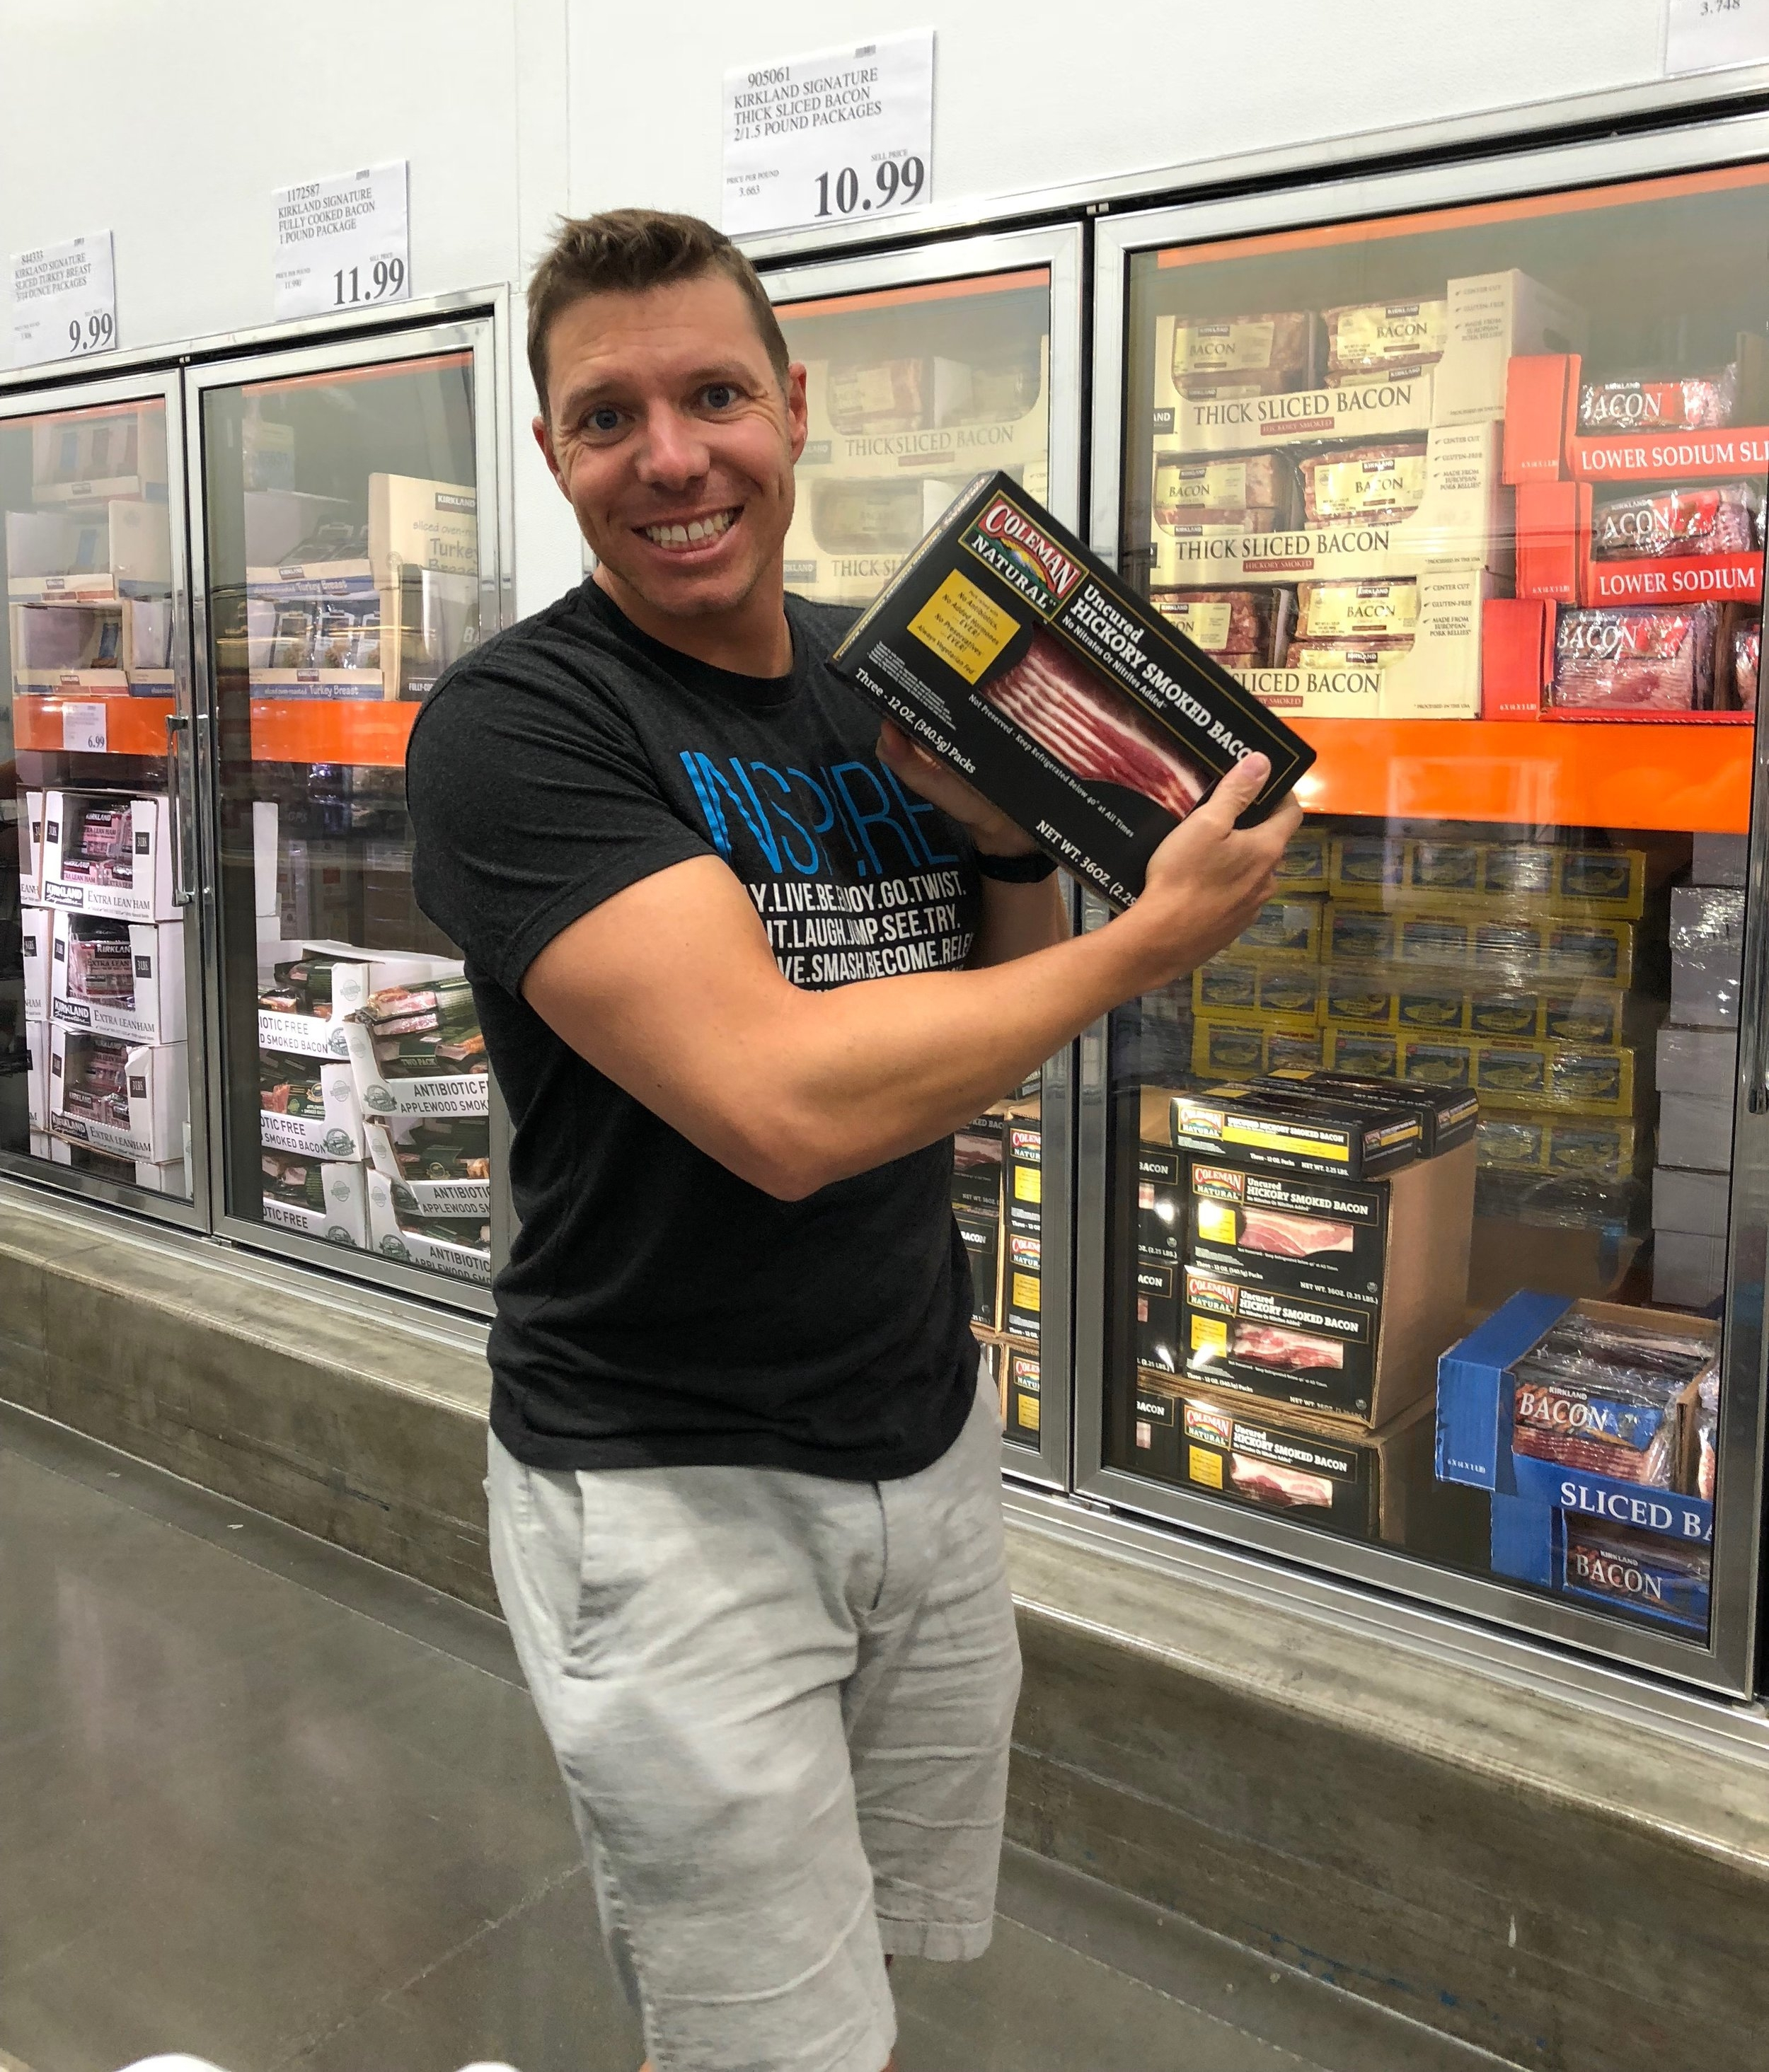 The Keto Dad Costco grocery shopping list Bacon